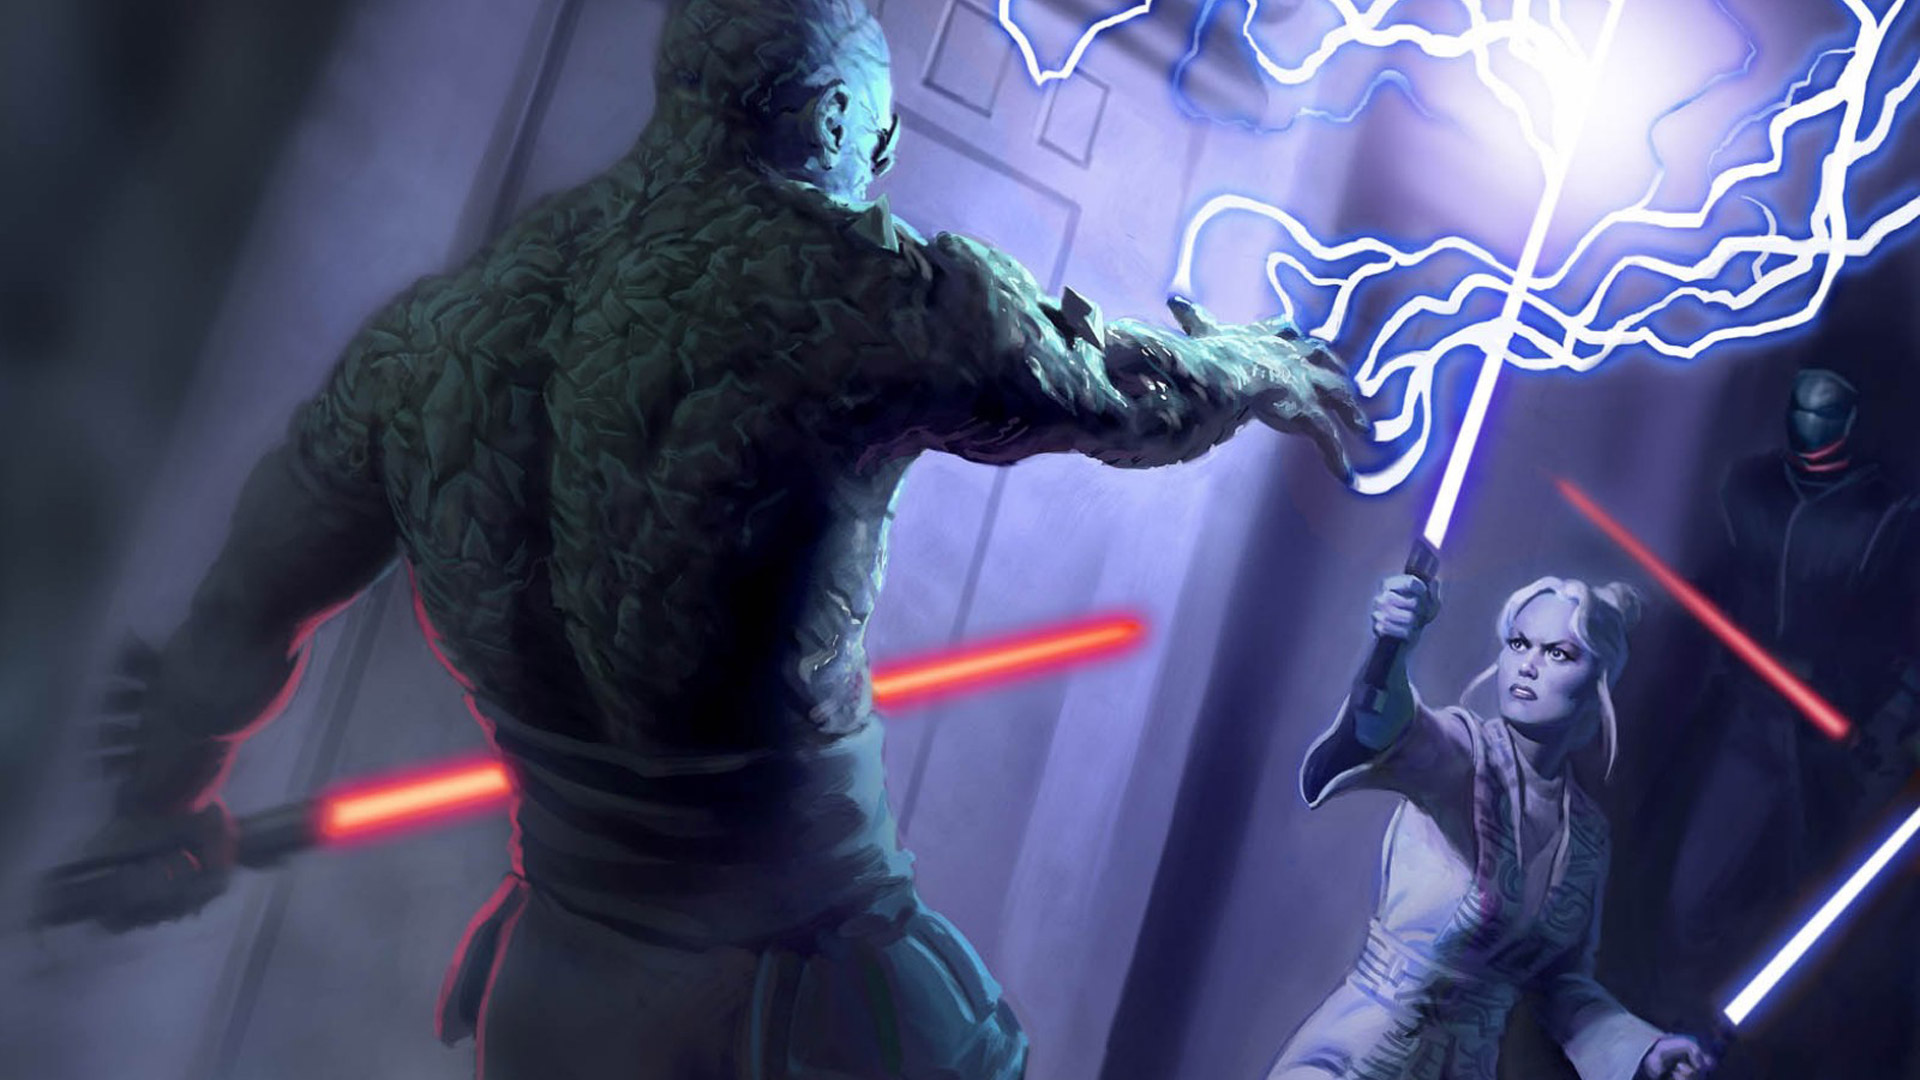 Free Star Wars: Knights of the Old Republic II � The Sith Lords Wallpaper in 1920x1080